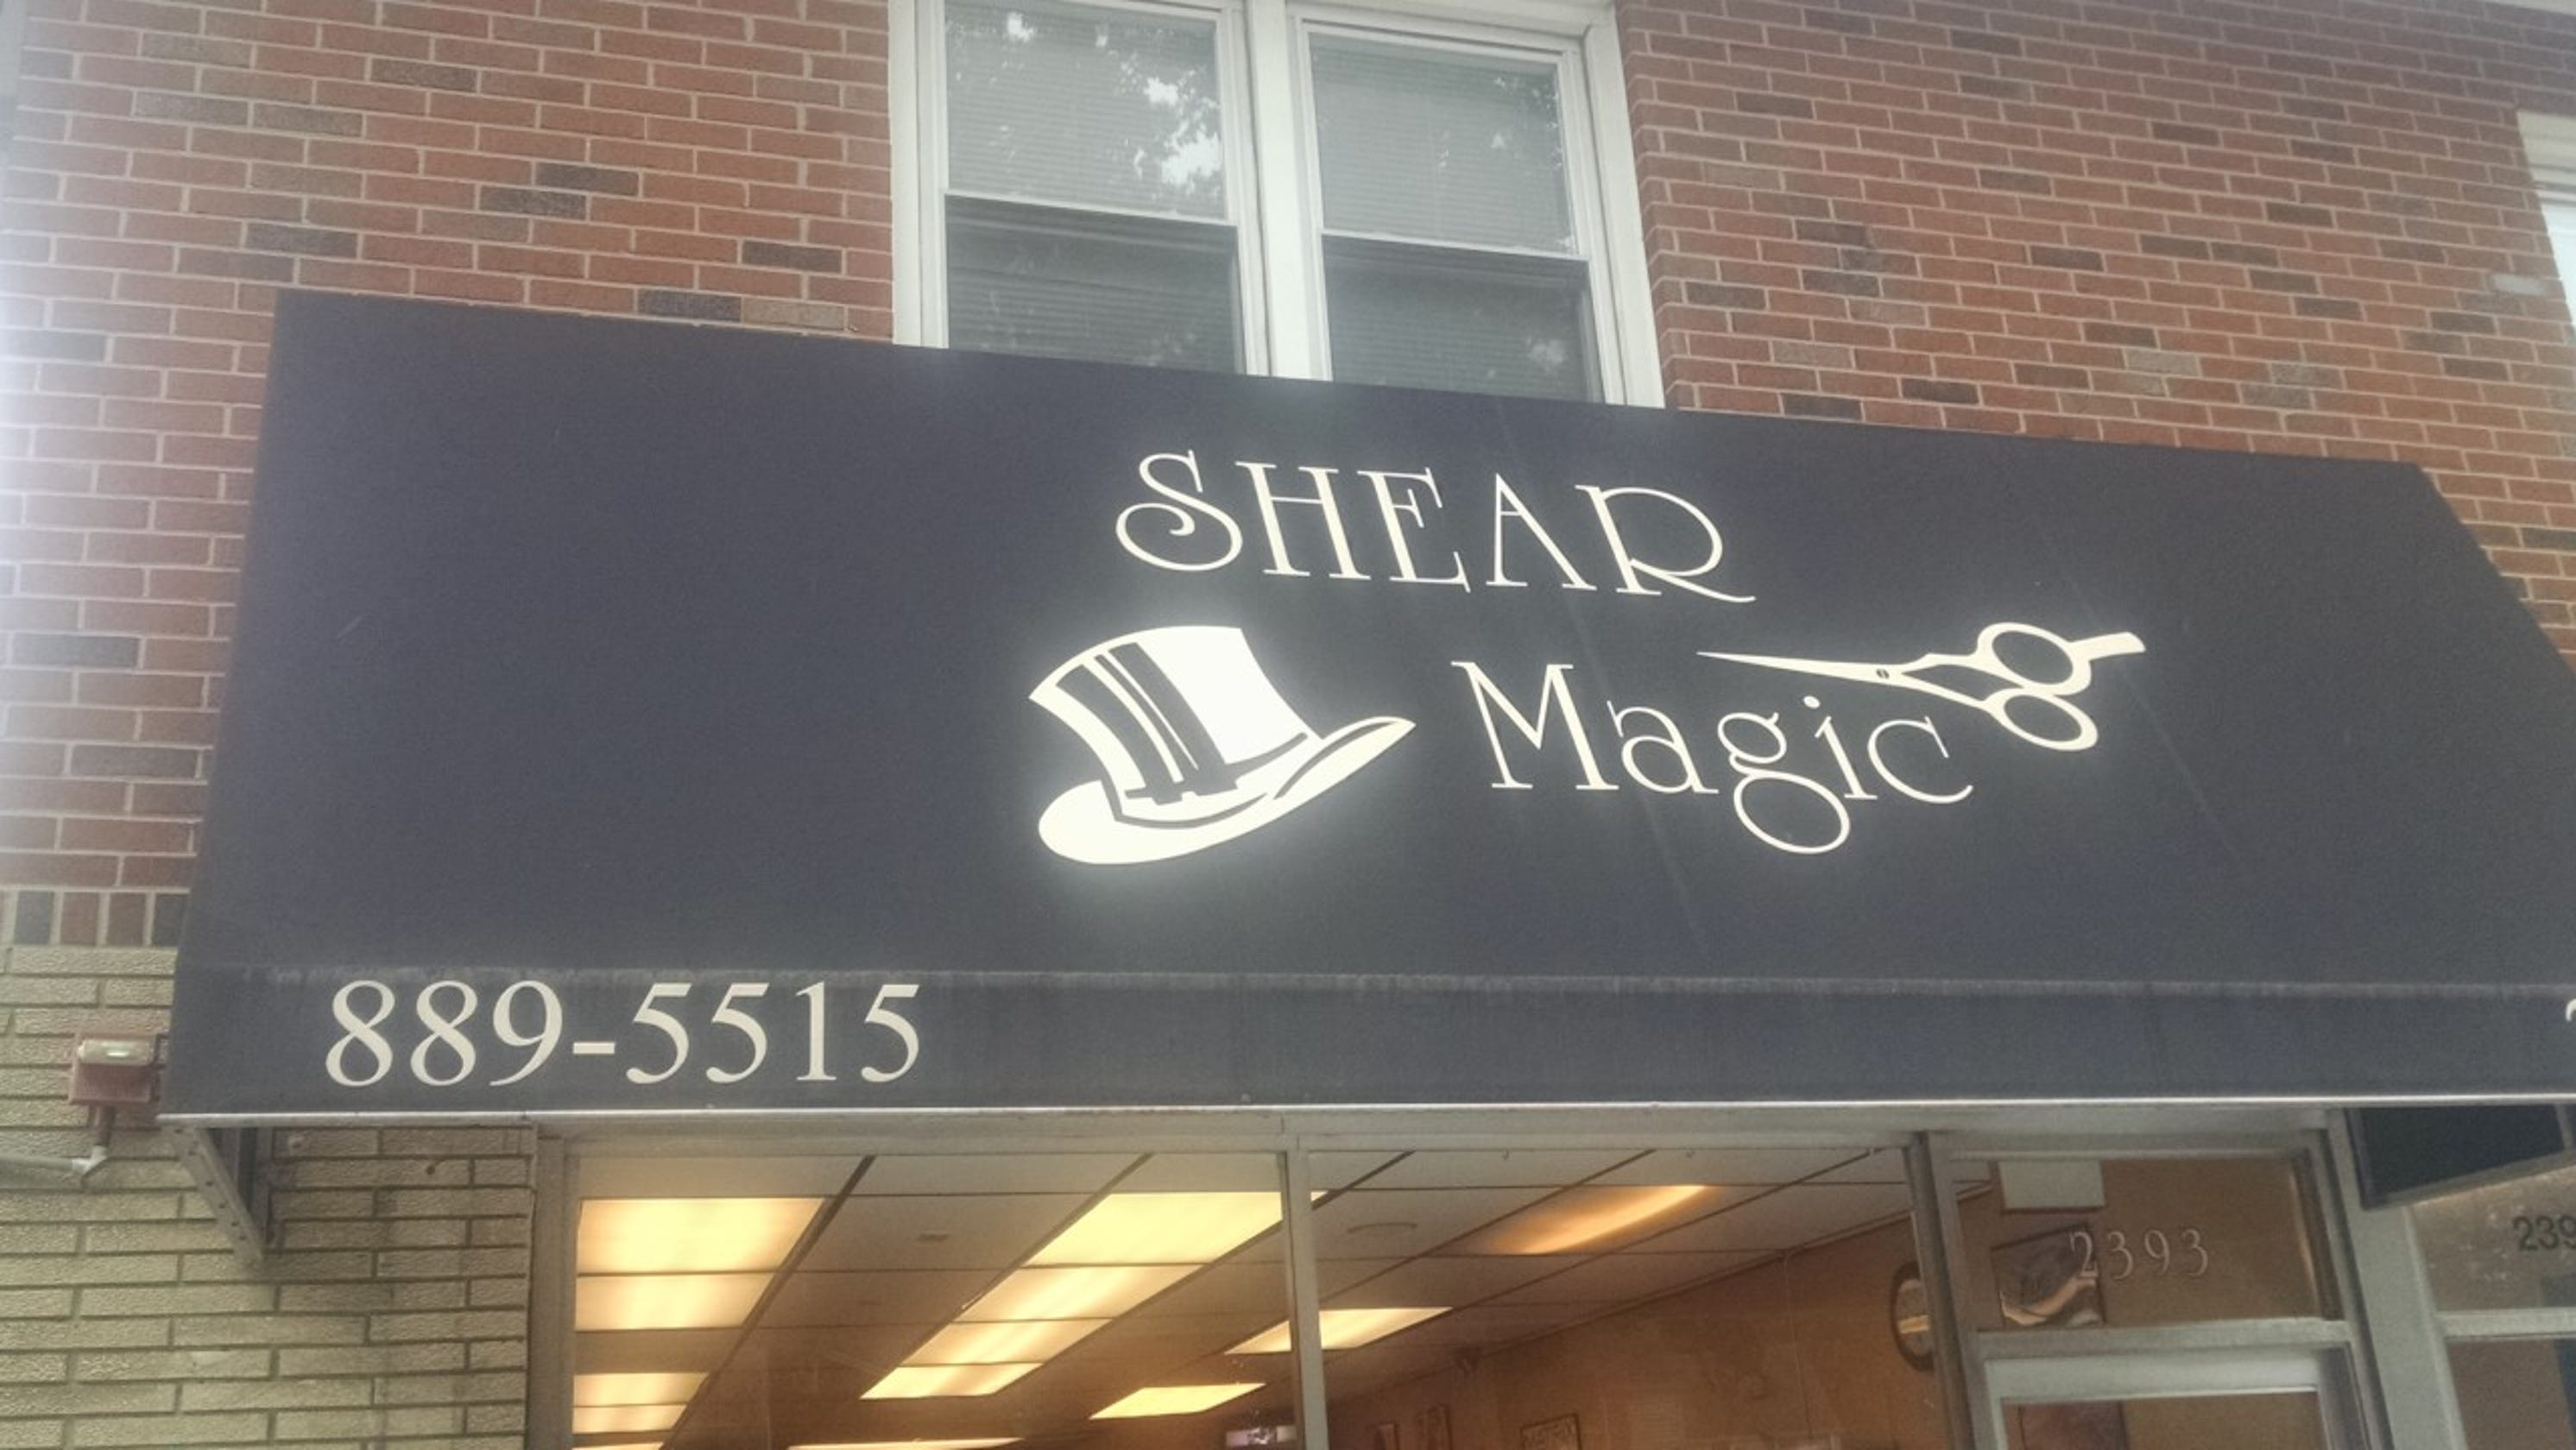 Pun-ny North Jersey beauty salon names that are shear fun